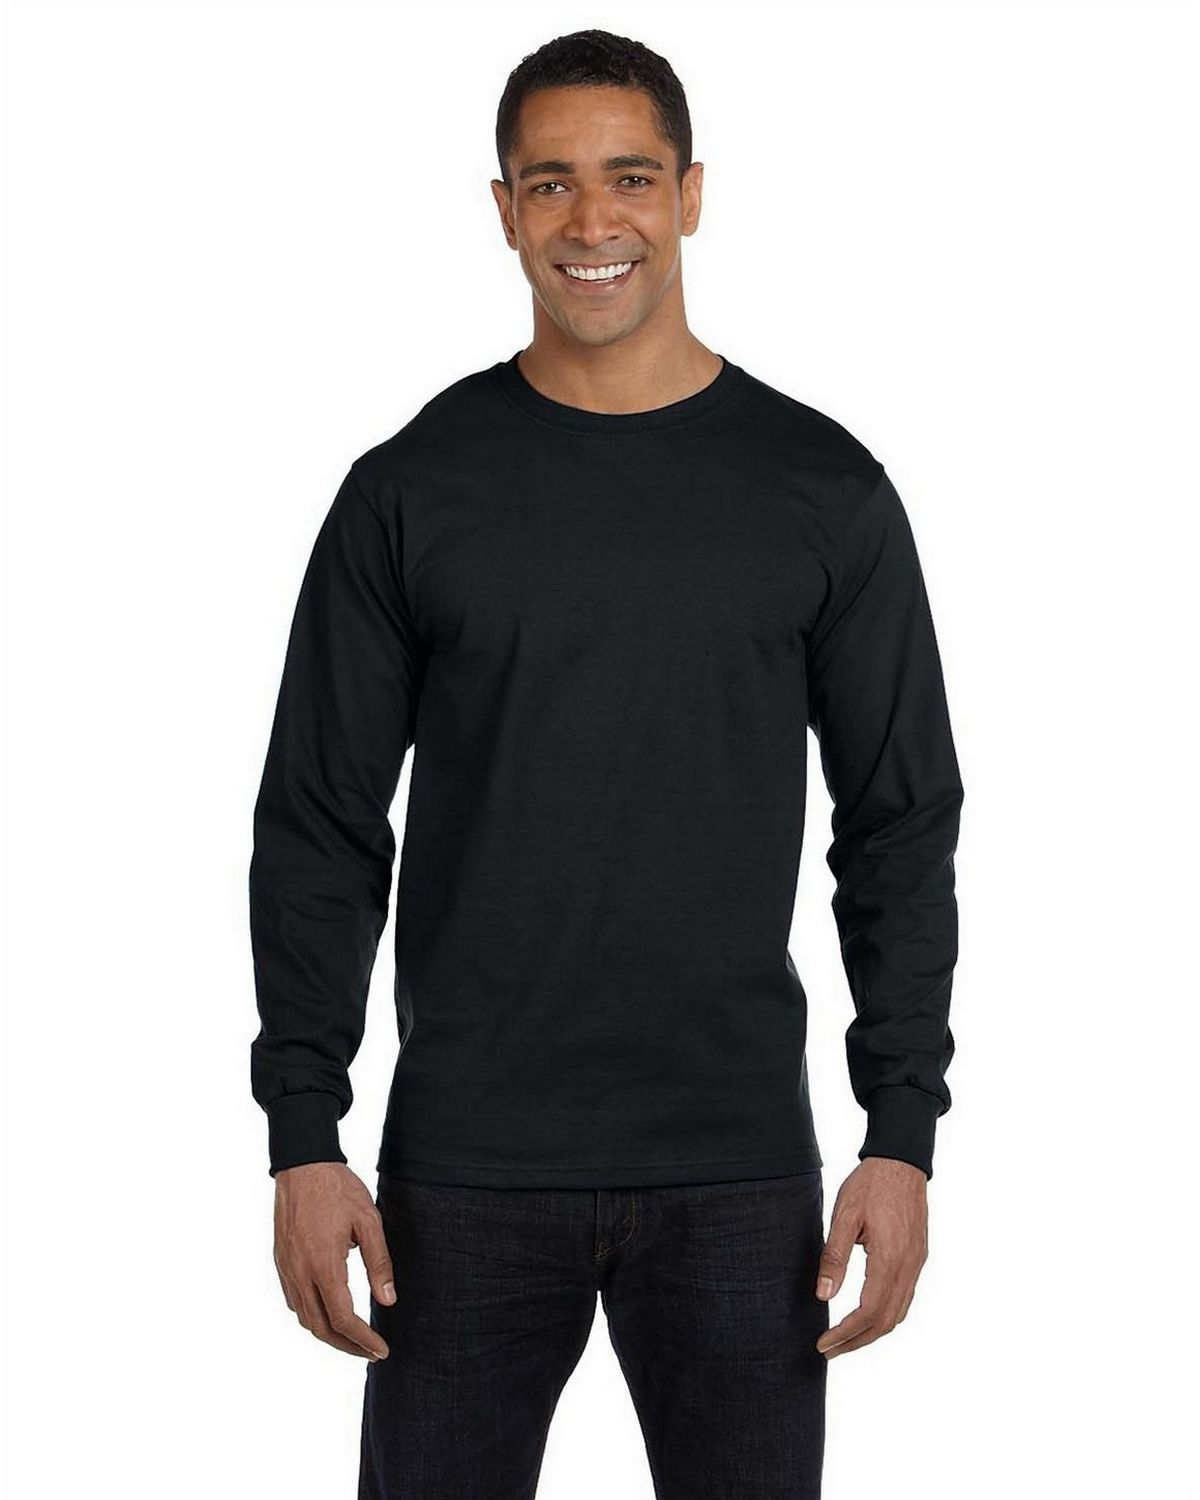 Gildan G8400 Long Sleeve Tee - Black - L G8400